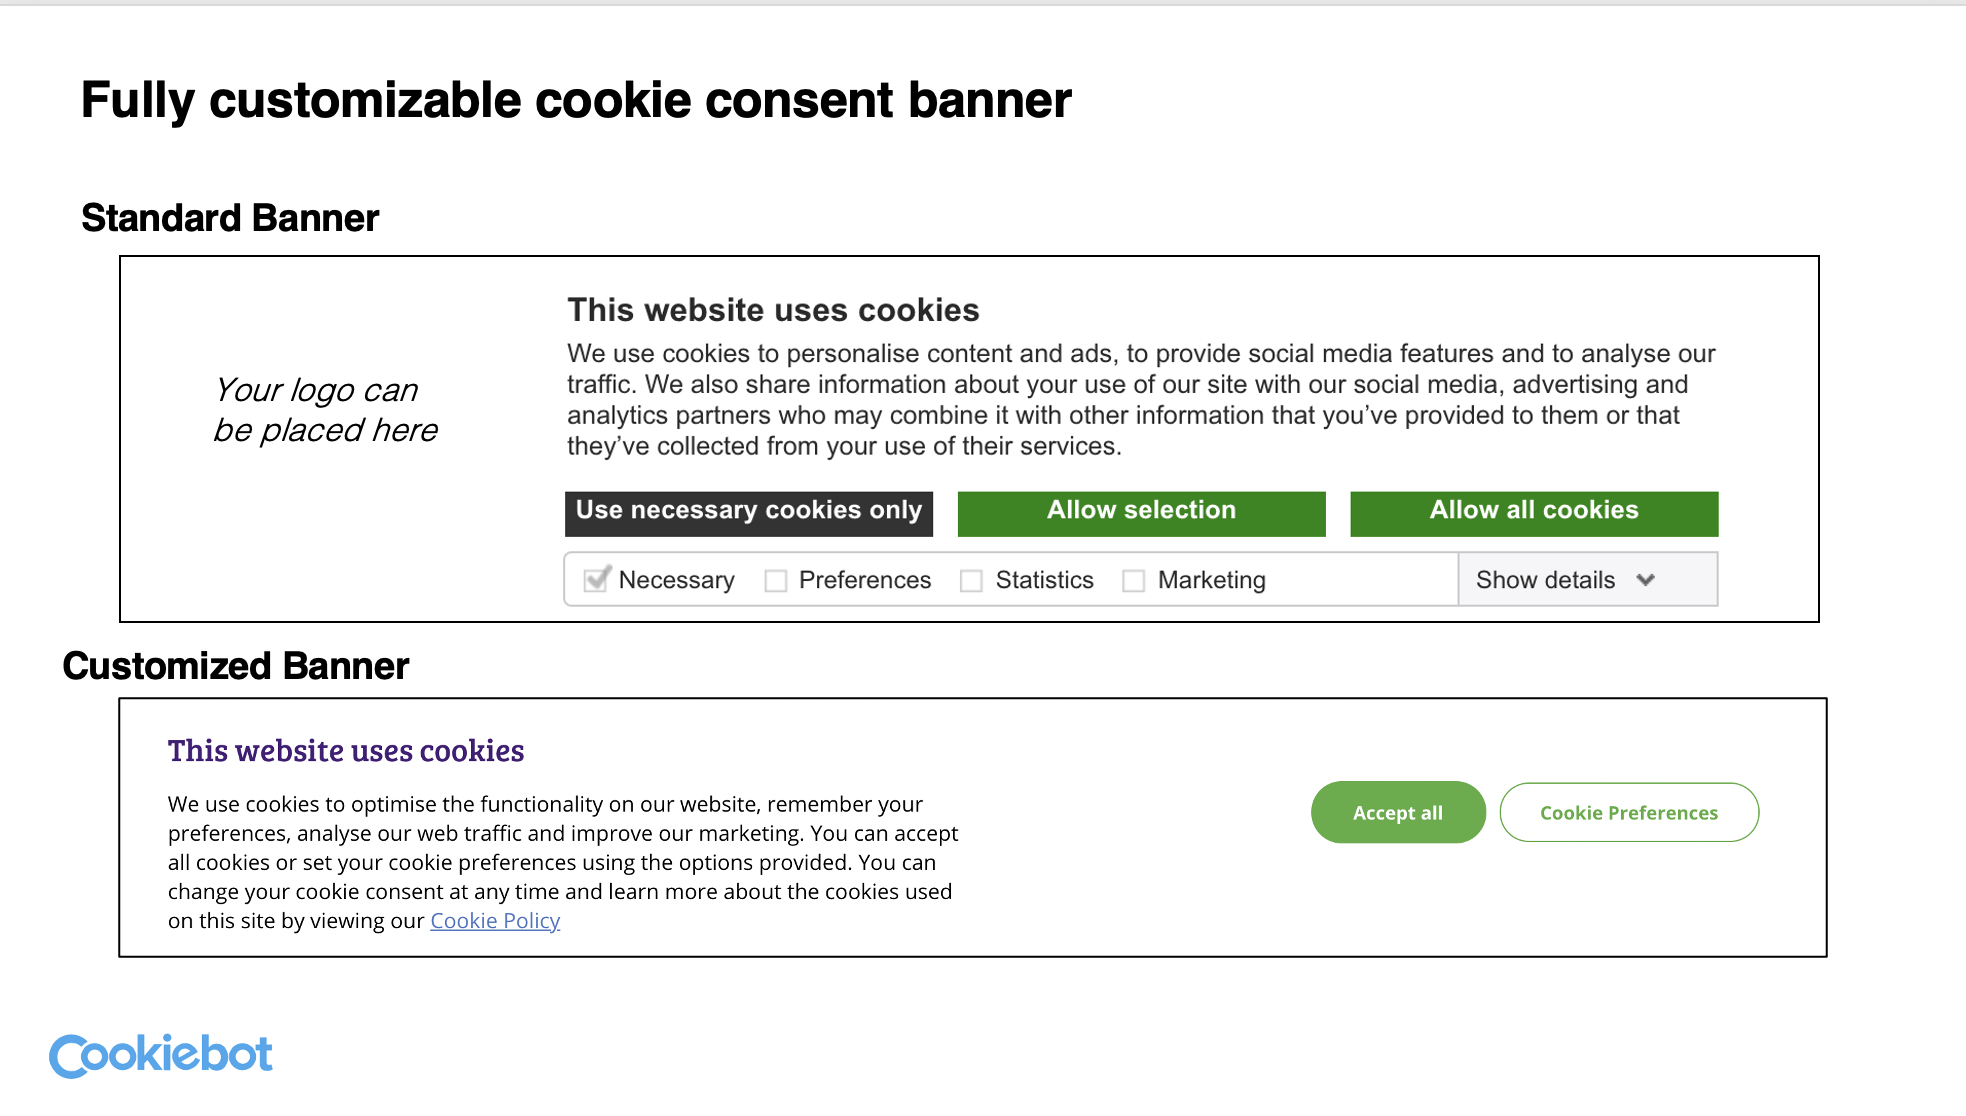 Cookiebot Customized banner